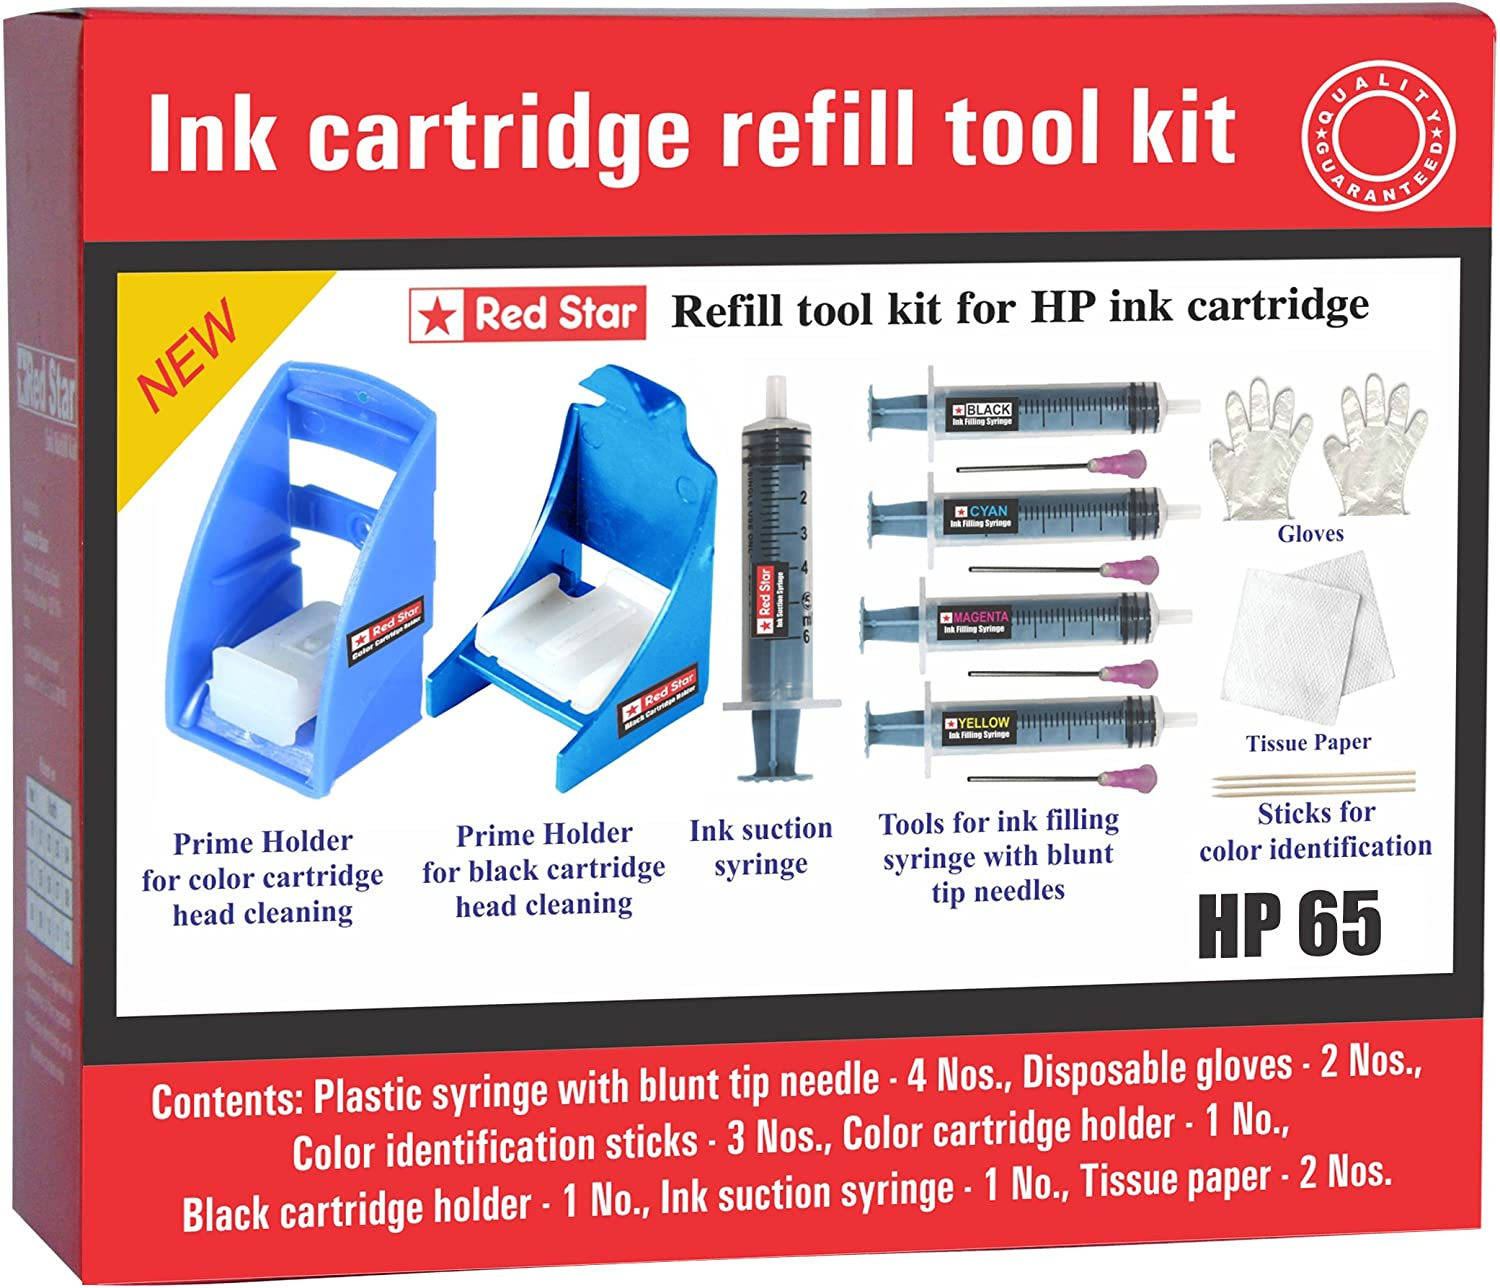 Red Star ink cartridge refill tool kit for hp 65 63 62 61 60 black and color ink cartridge with tools & instructions